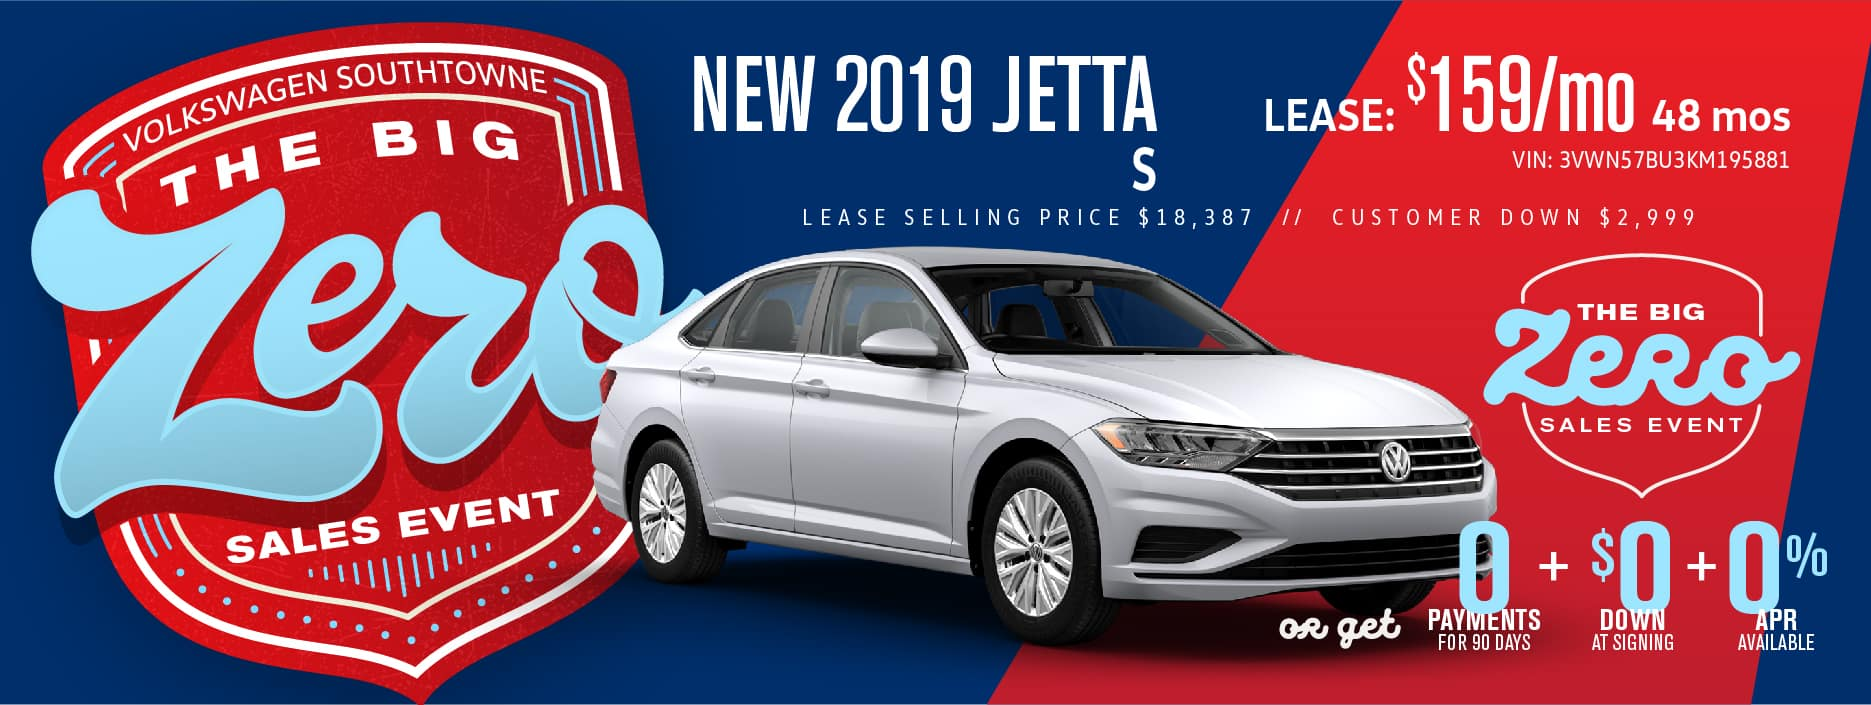 Get a Jetta for $0 down! during our BIG ZERO Sale!